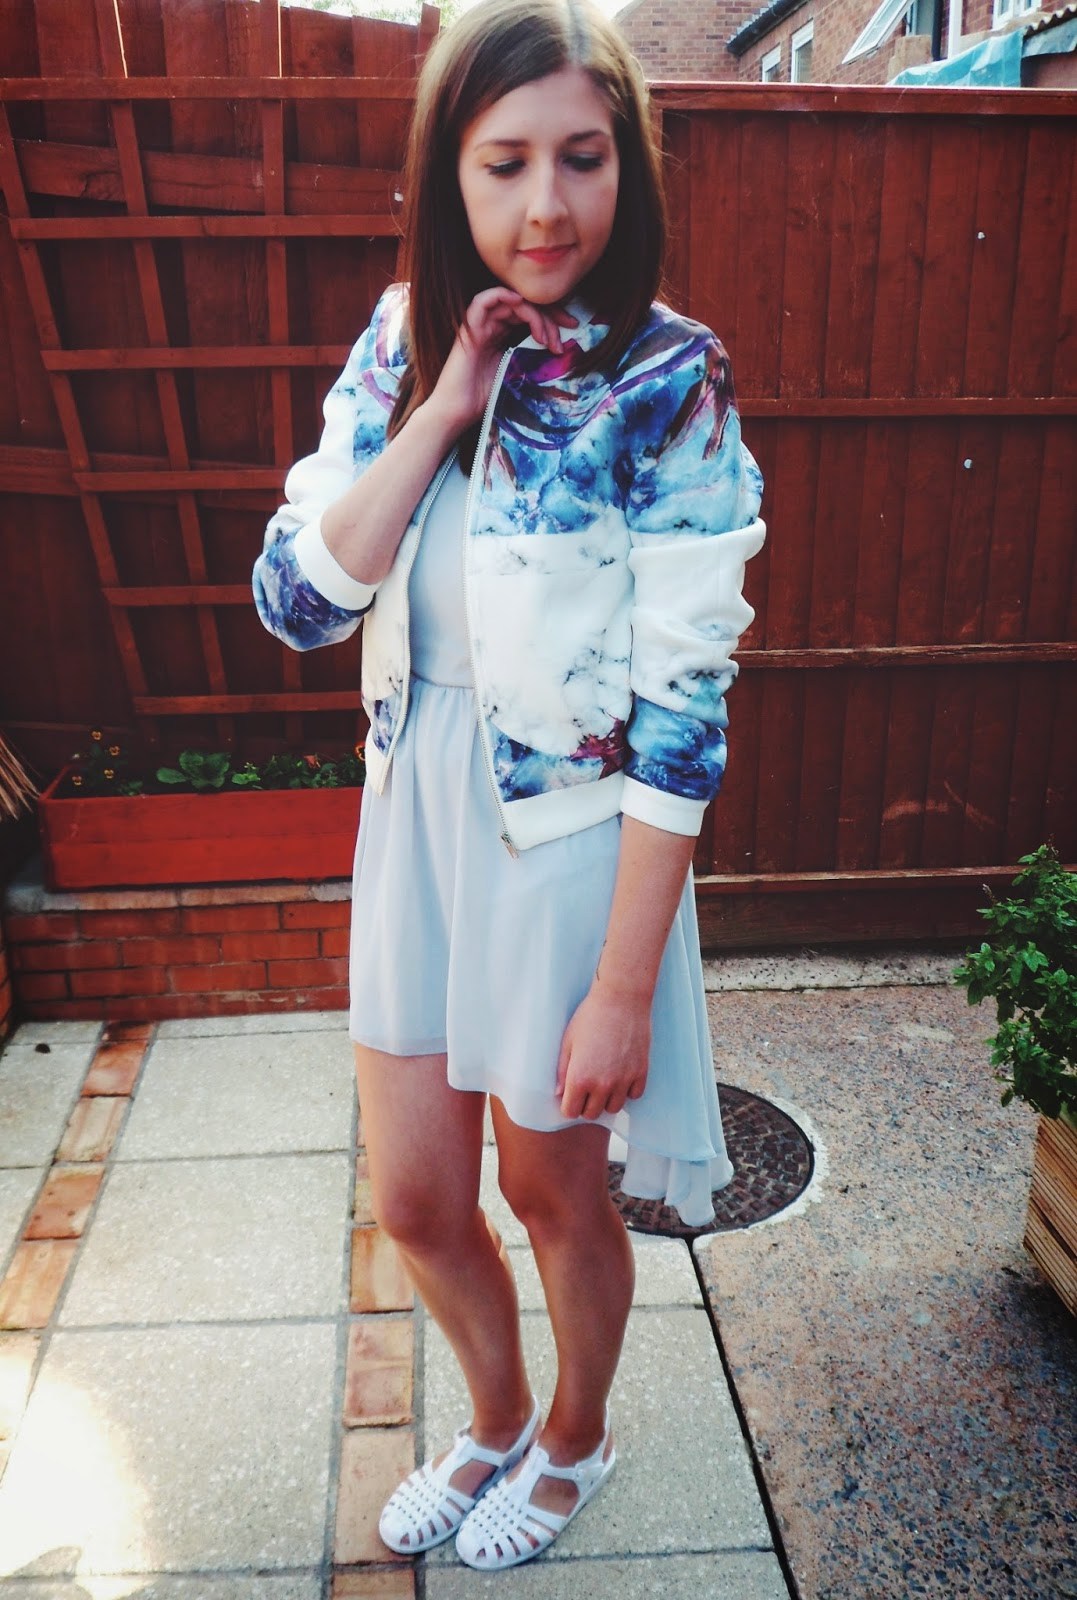 ASOS, asseenonme, bomberjacket, fblogger, fbloggers, jellyshoes, missguided, dress, newlook, ootd, outfitoftheday, summer, whatibought, whatimwearing, wiw